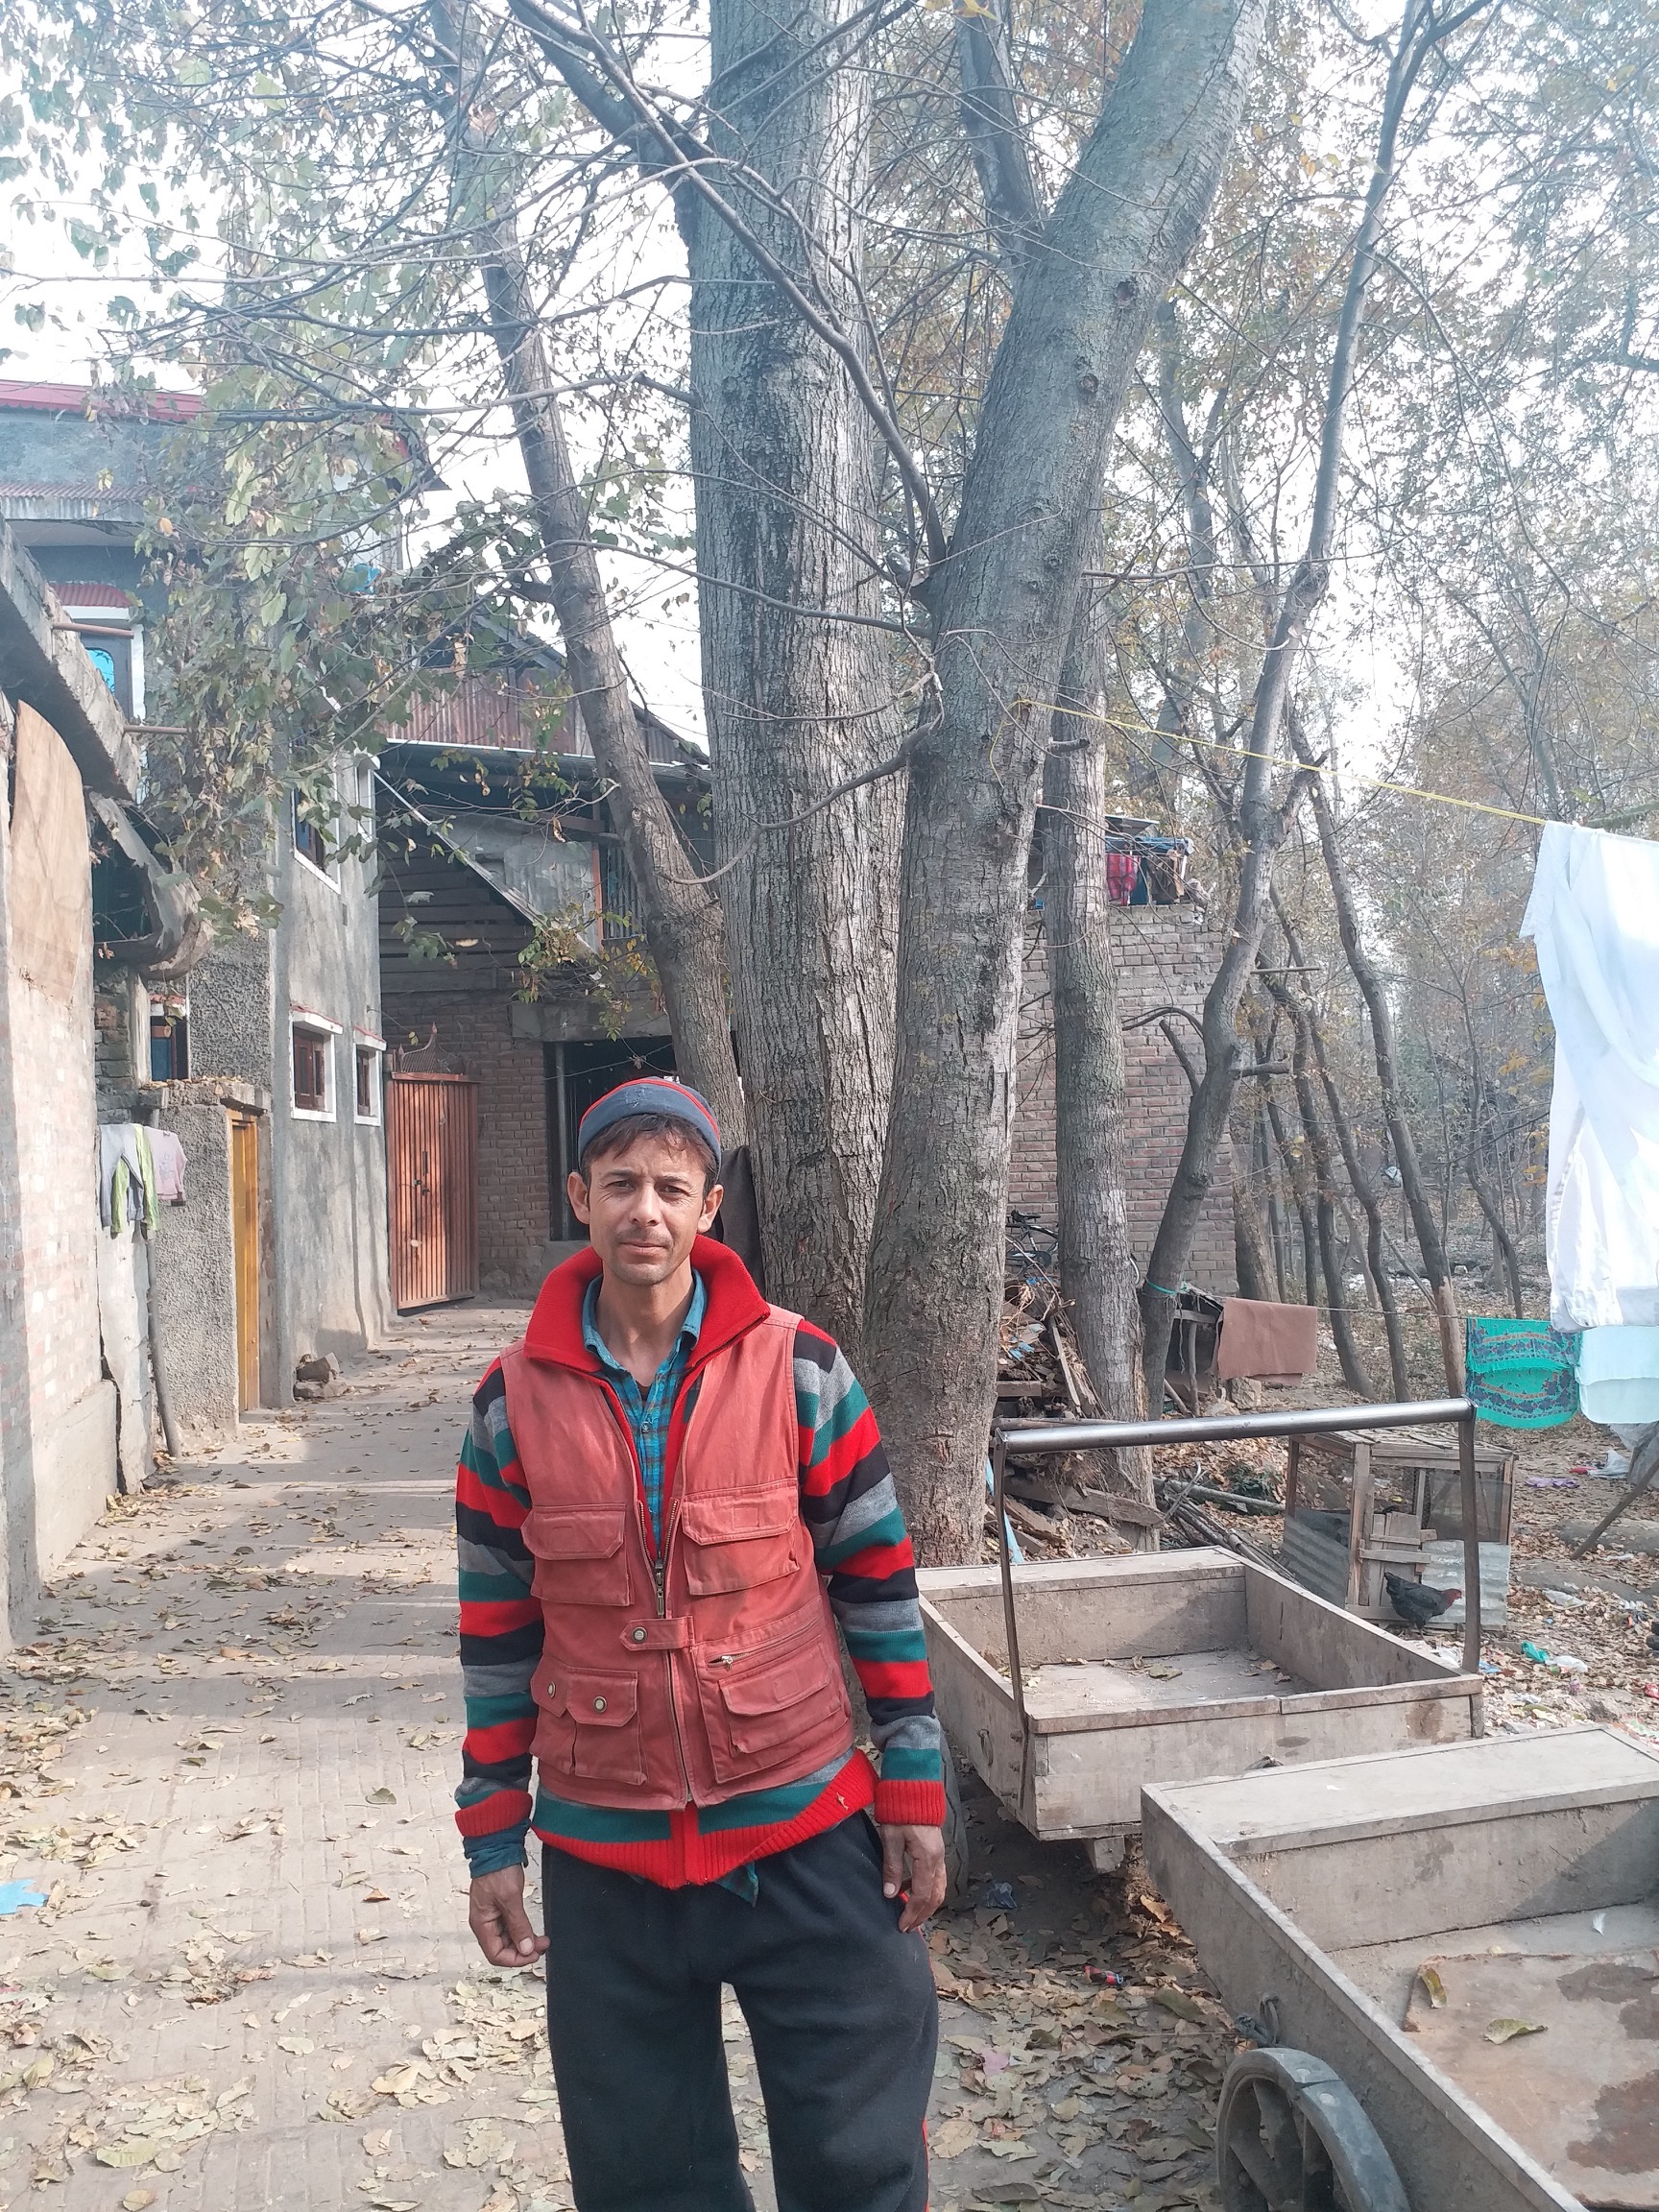 Abdul Rashid Sheikh, father of pellet victim Asif, outside his house at Khanabal, Anantnag in Jammu and Kashmir. Credit: Anando Bhakto